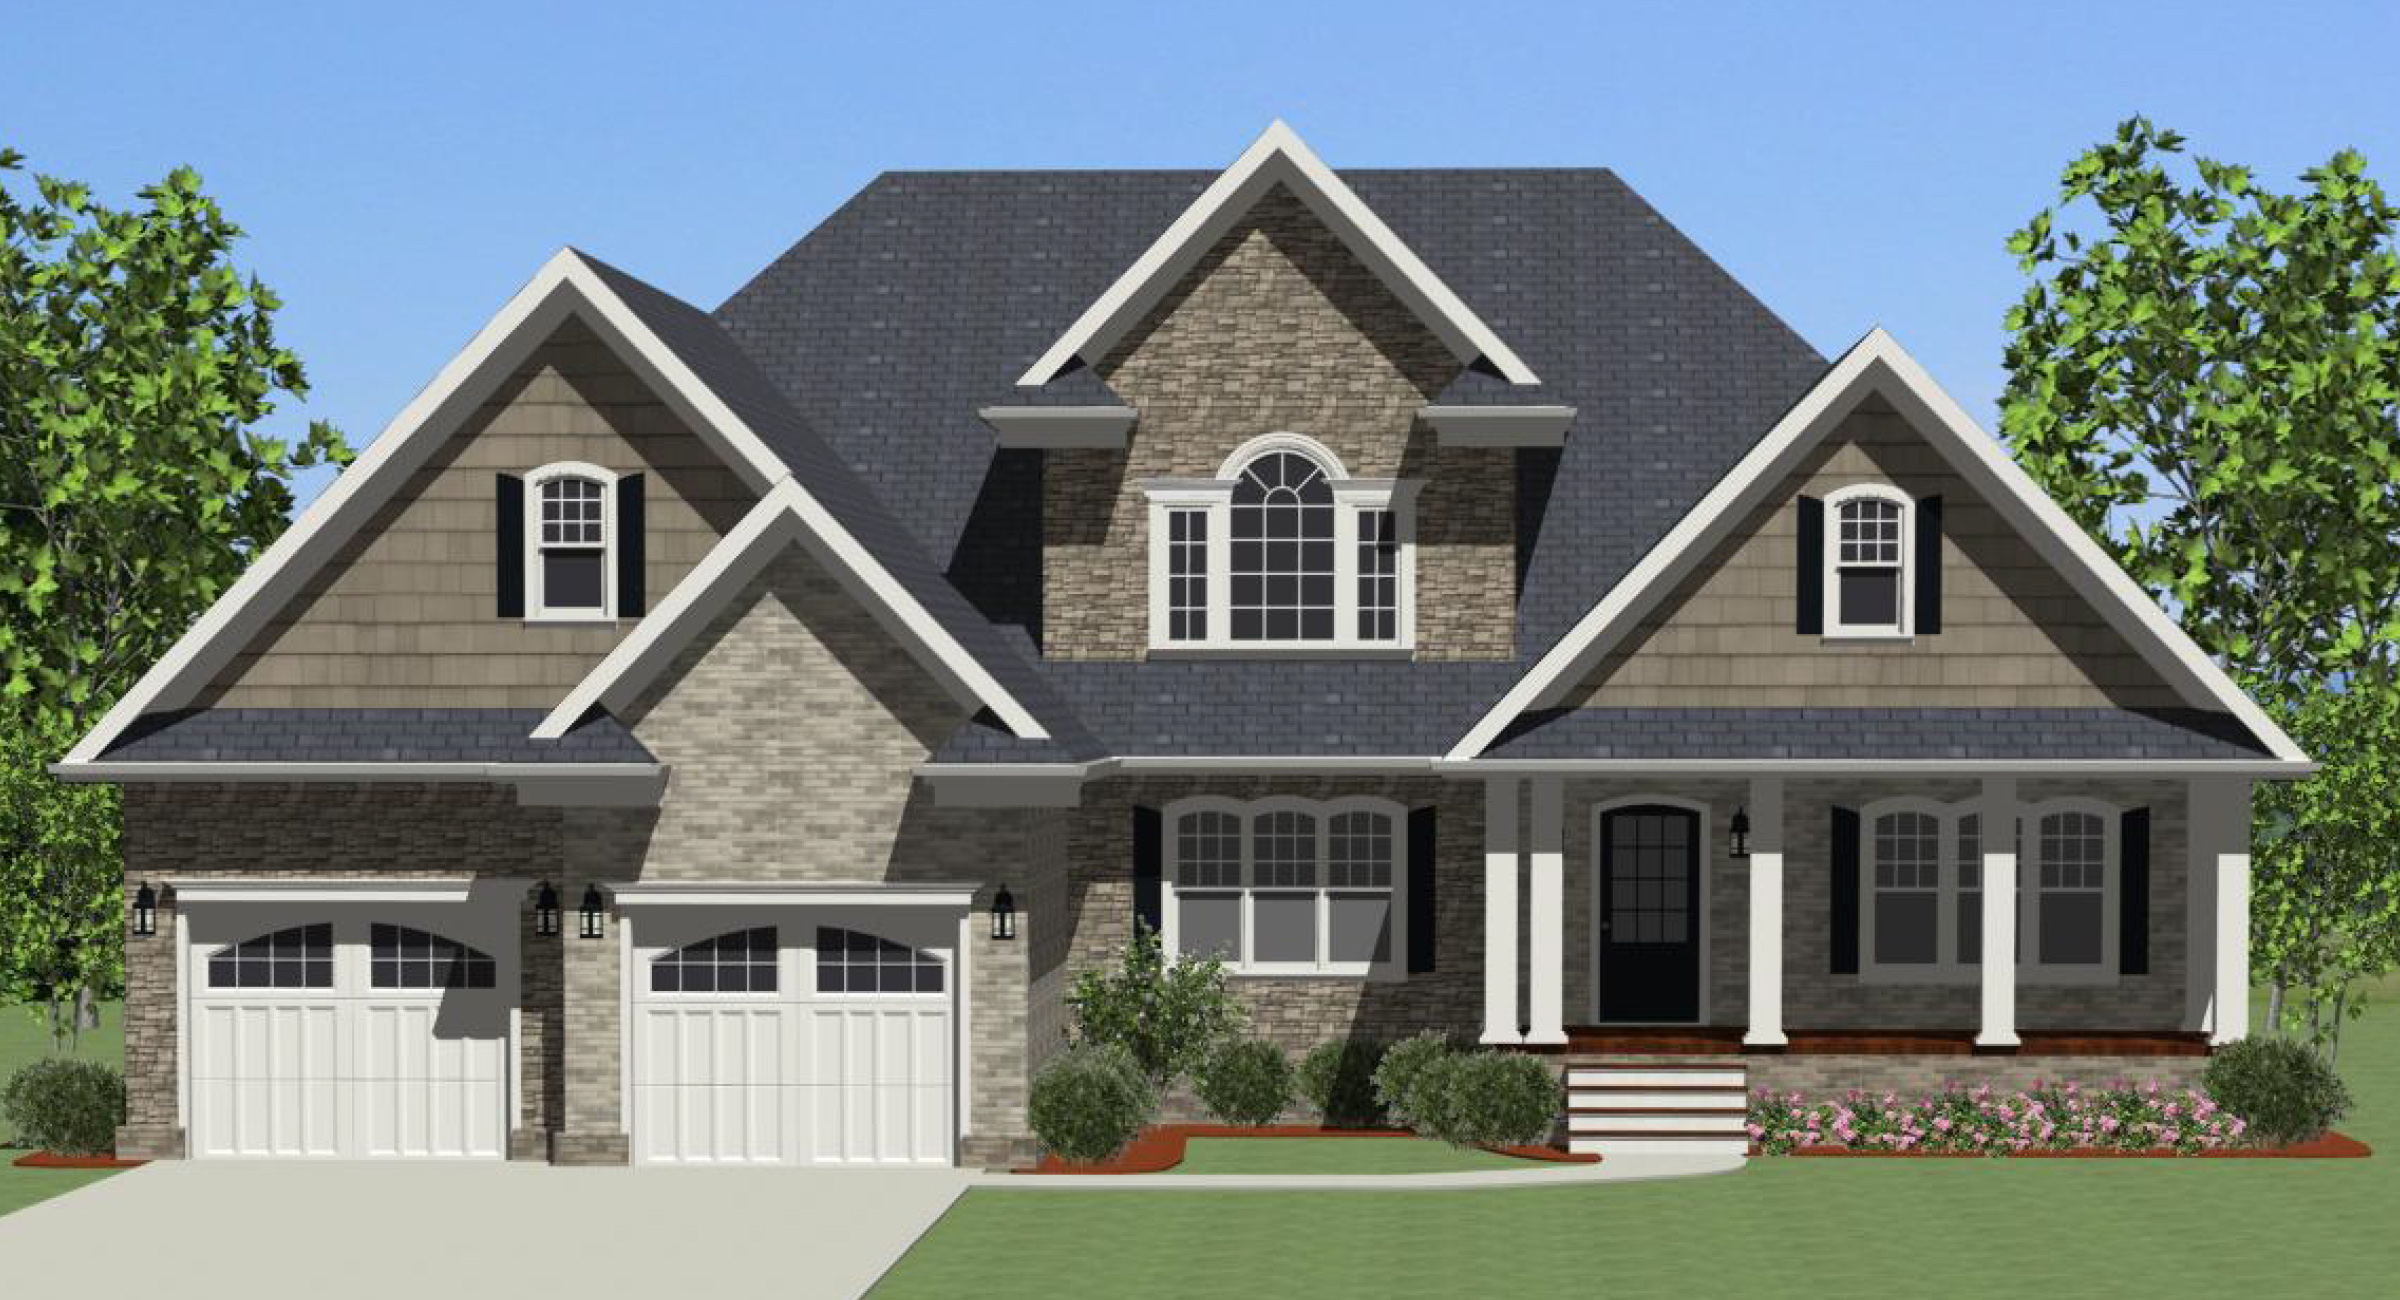 Live on one level 46229la architectural designs for South louisiana house plans